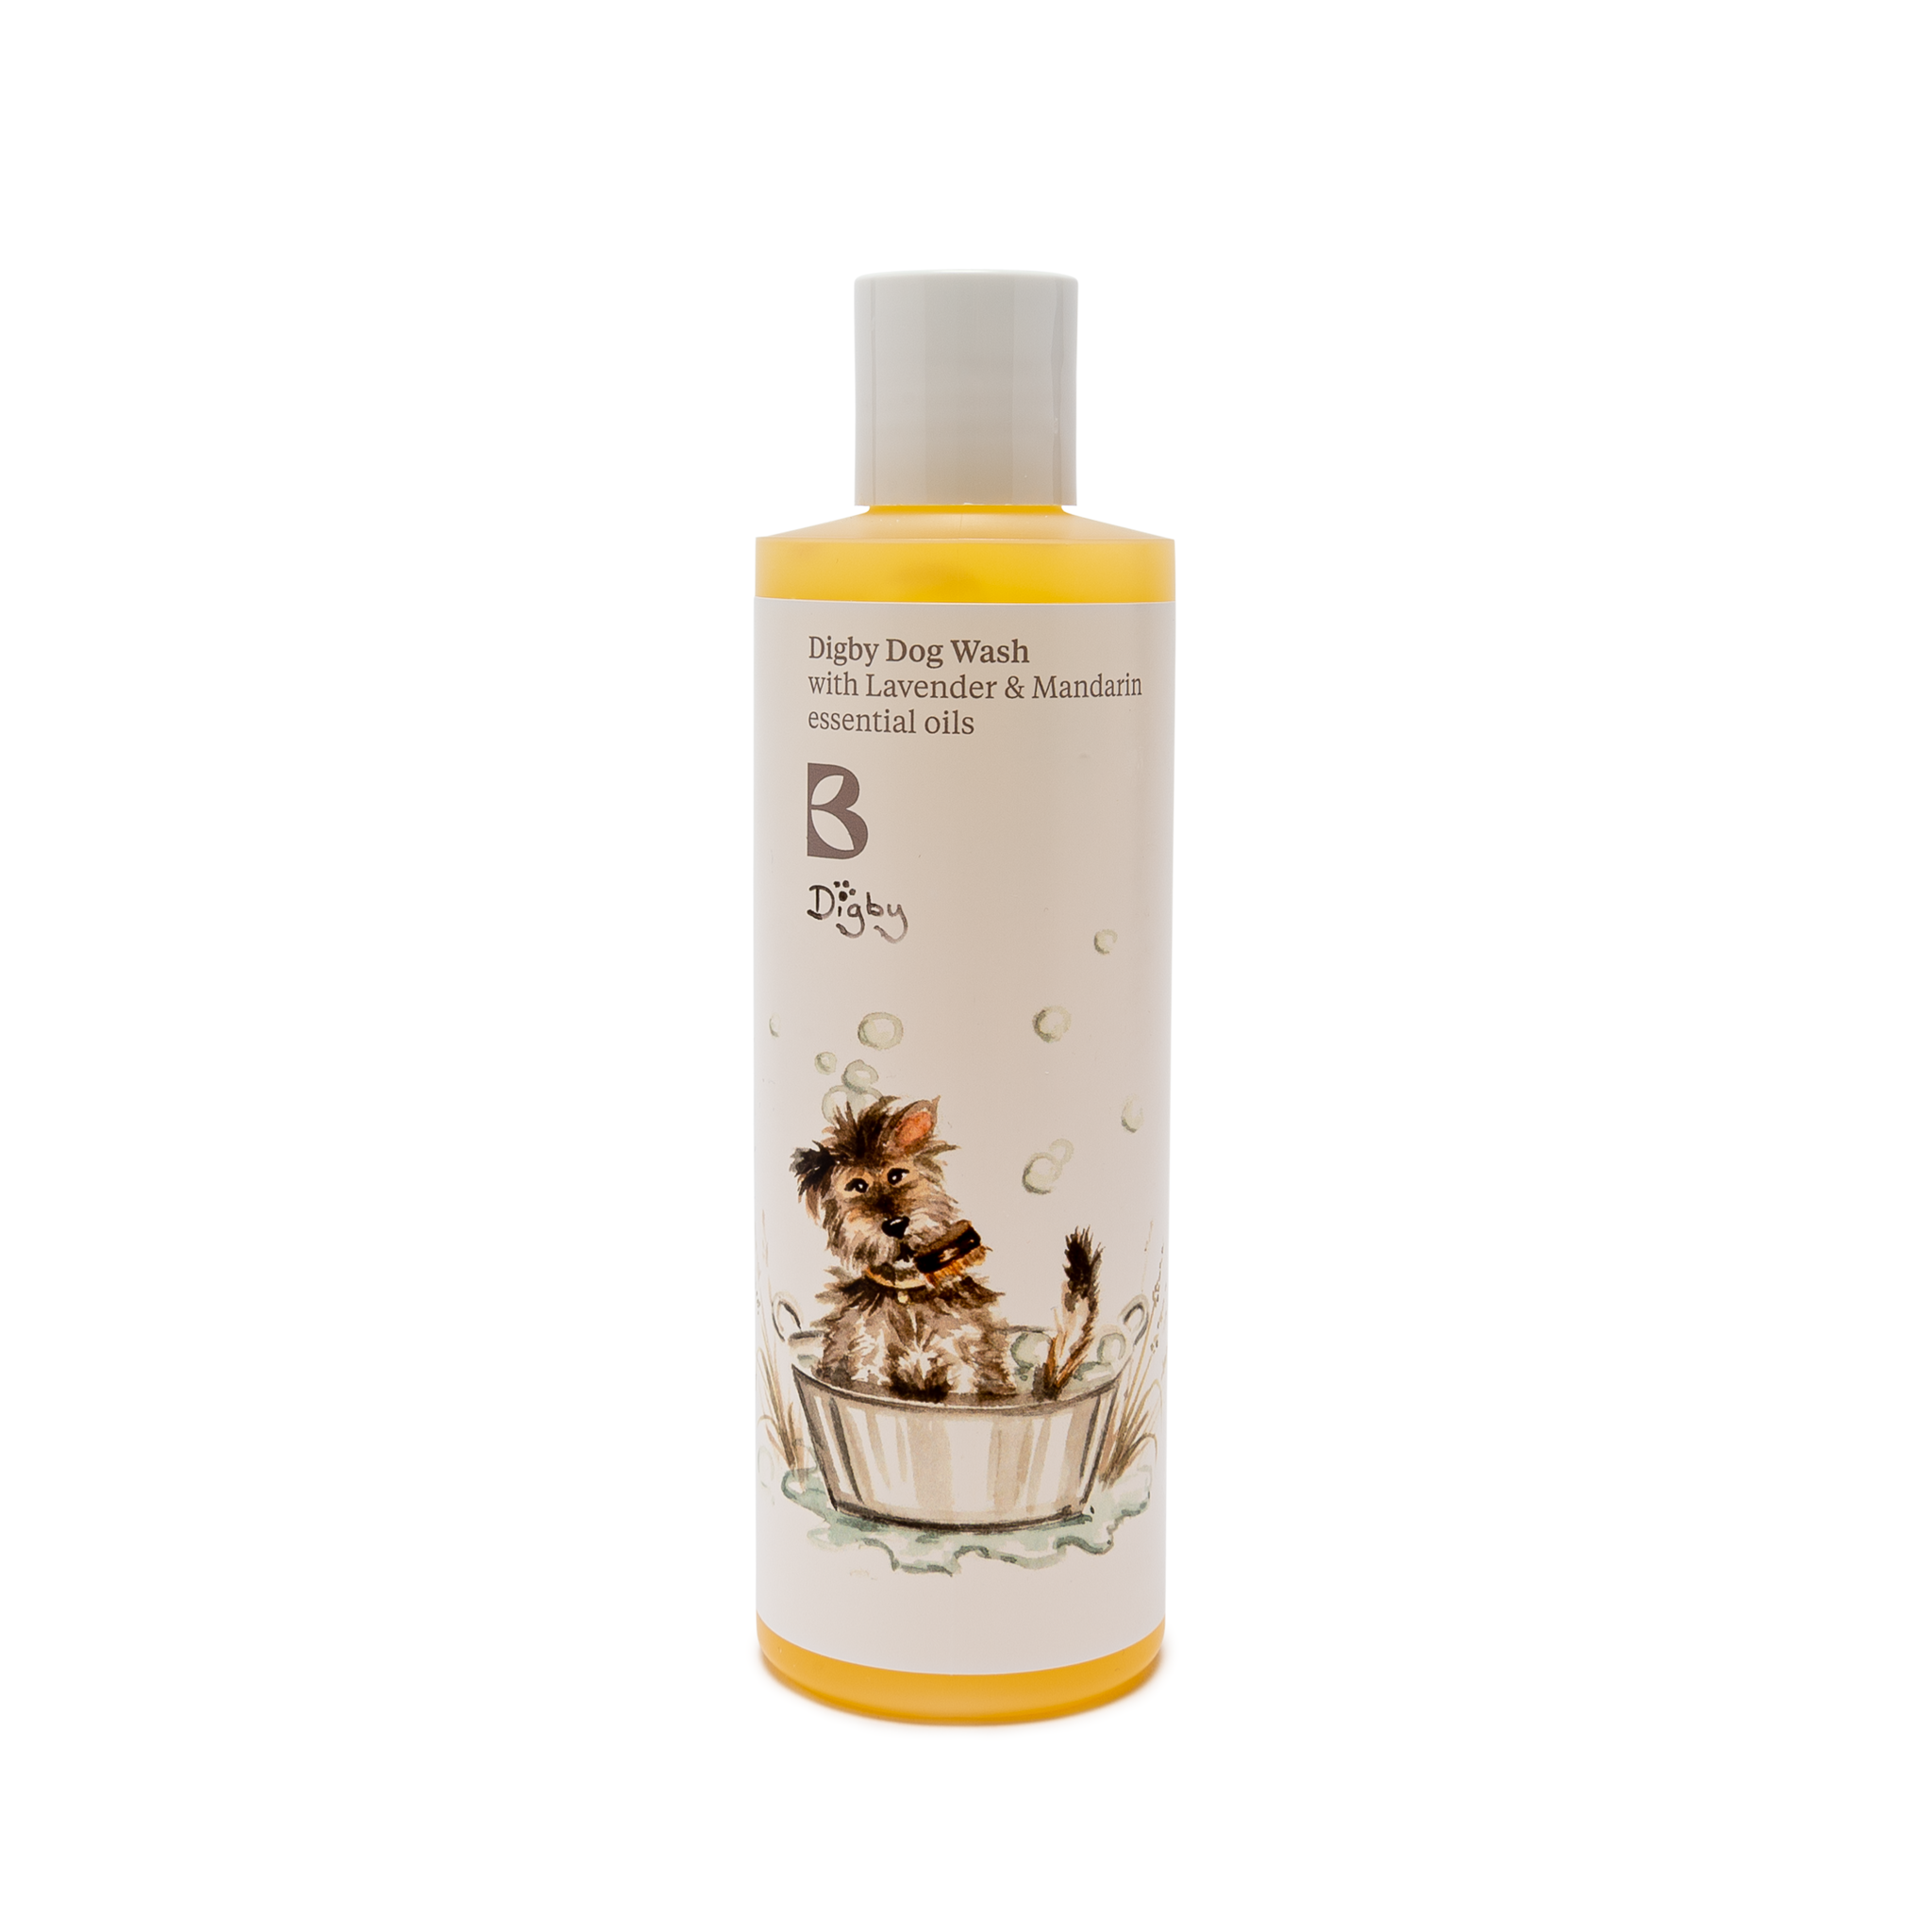 Digby Dog Wash, Pet Shampoo & Conditioner by Dogs Dogs Dogs